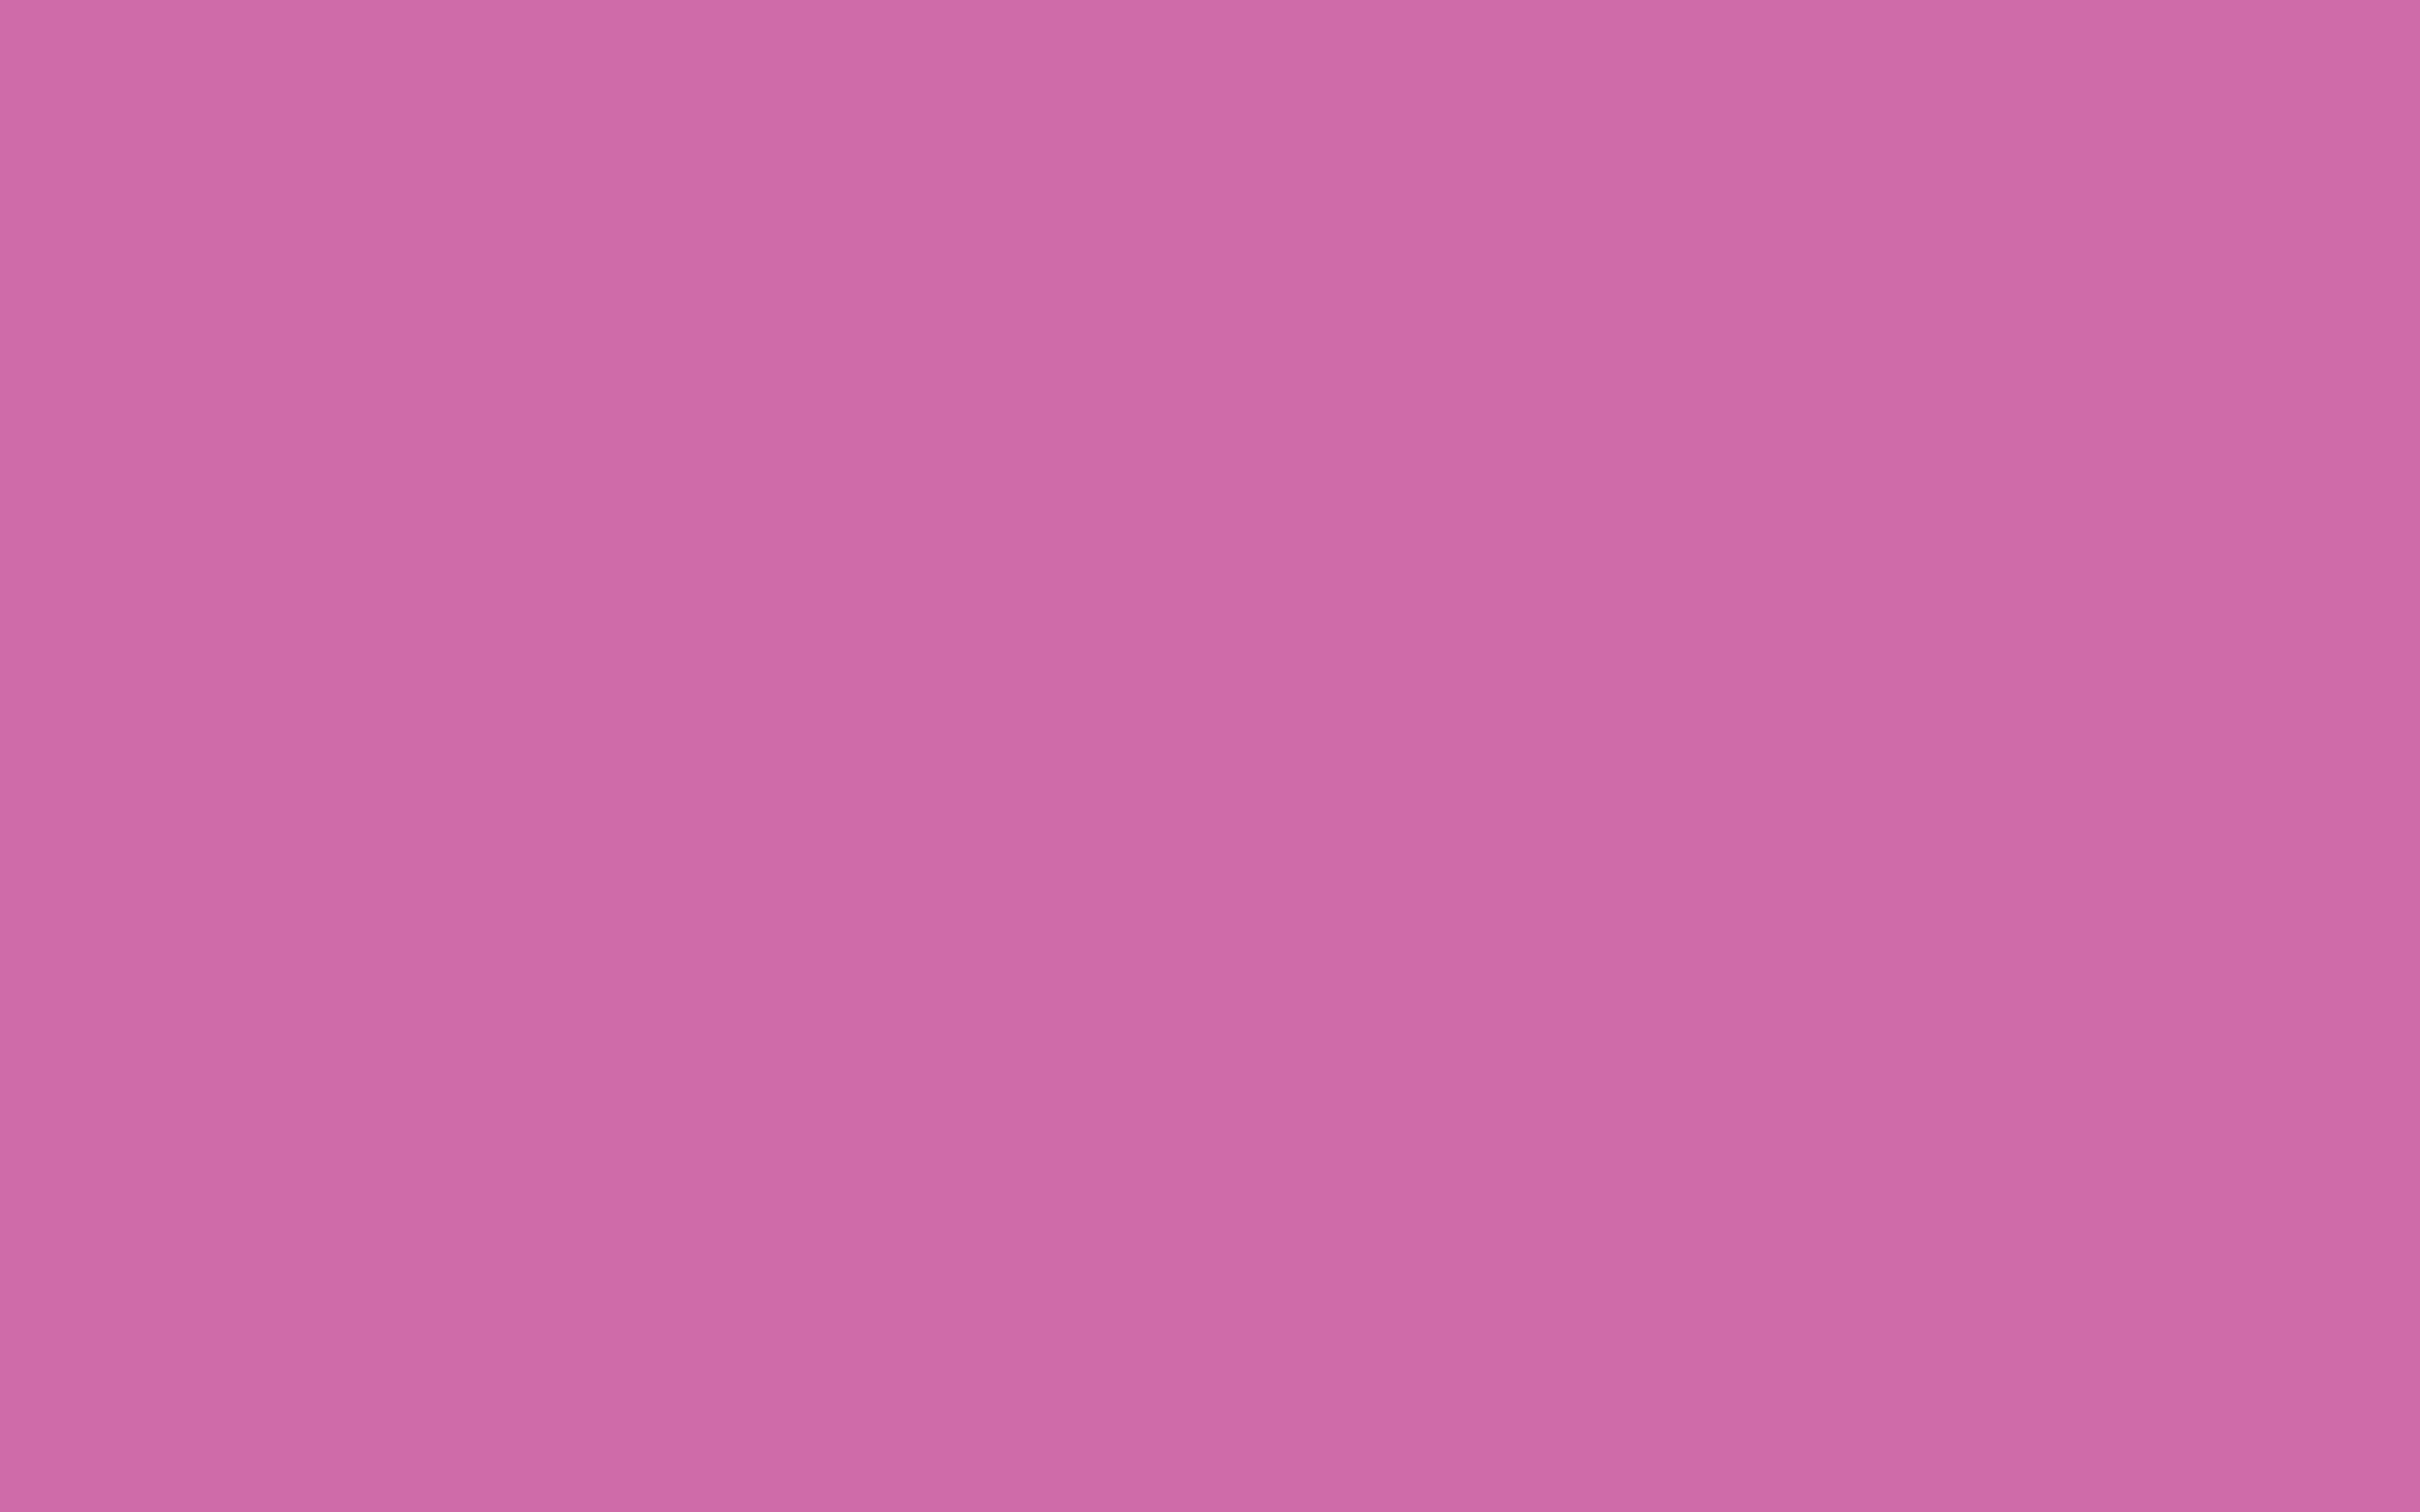 2560x1600 Super Pink Solid Color Background